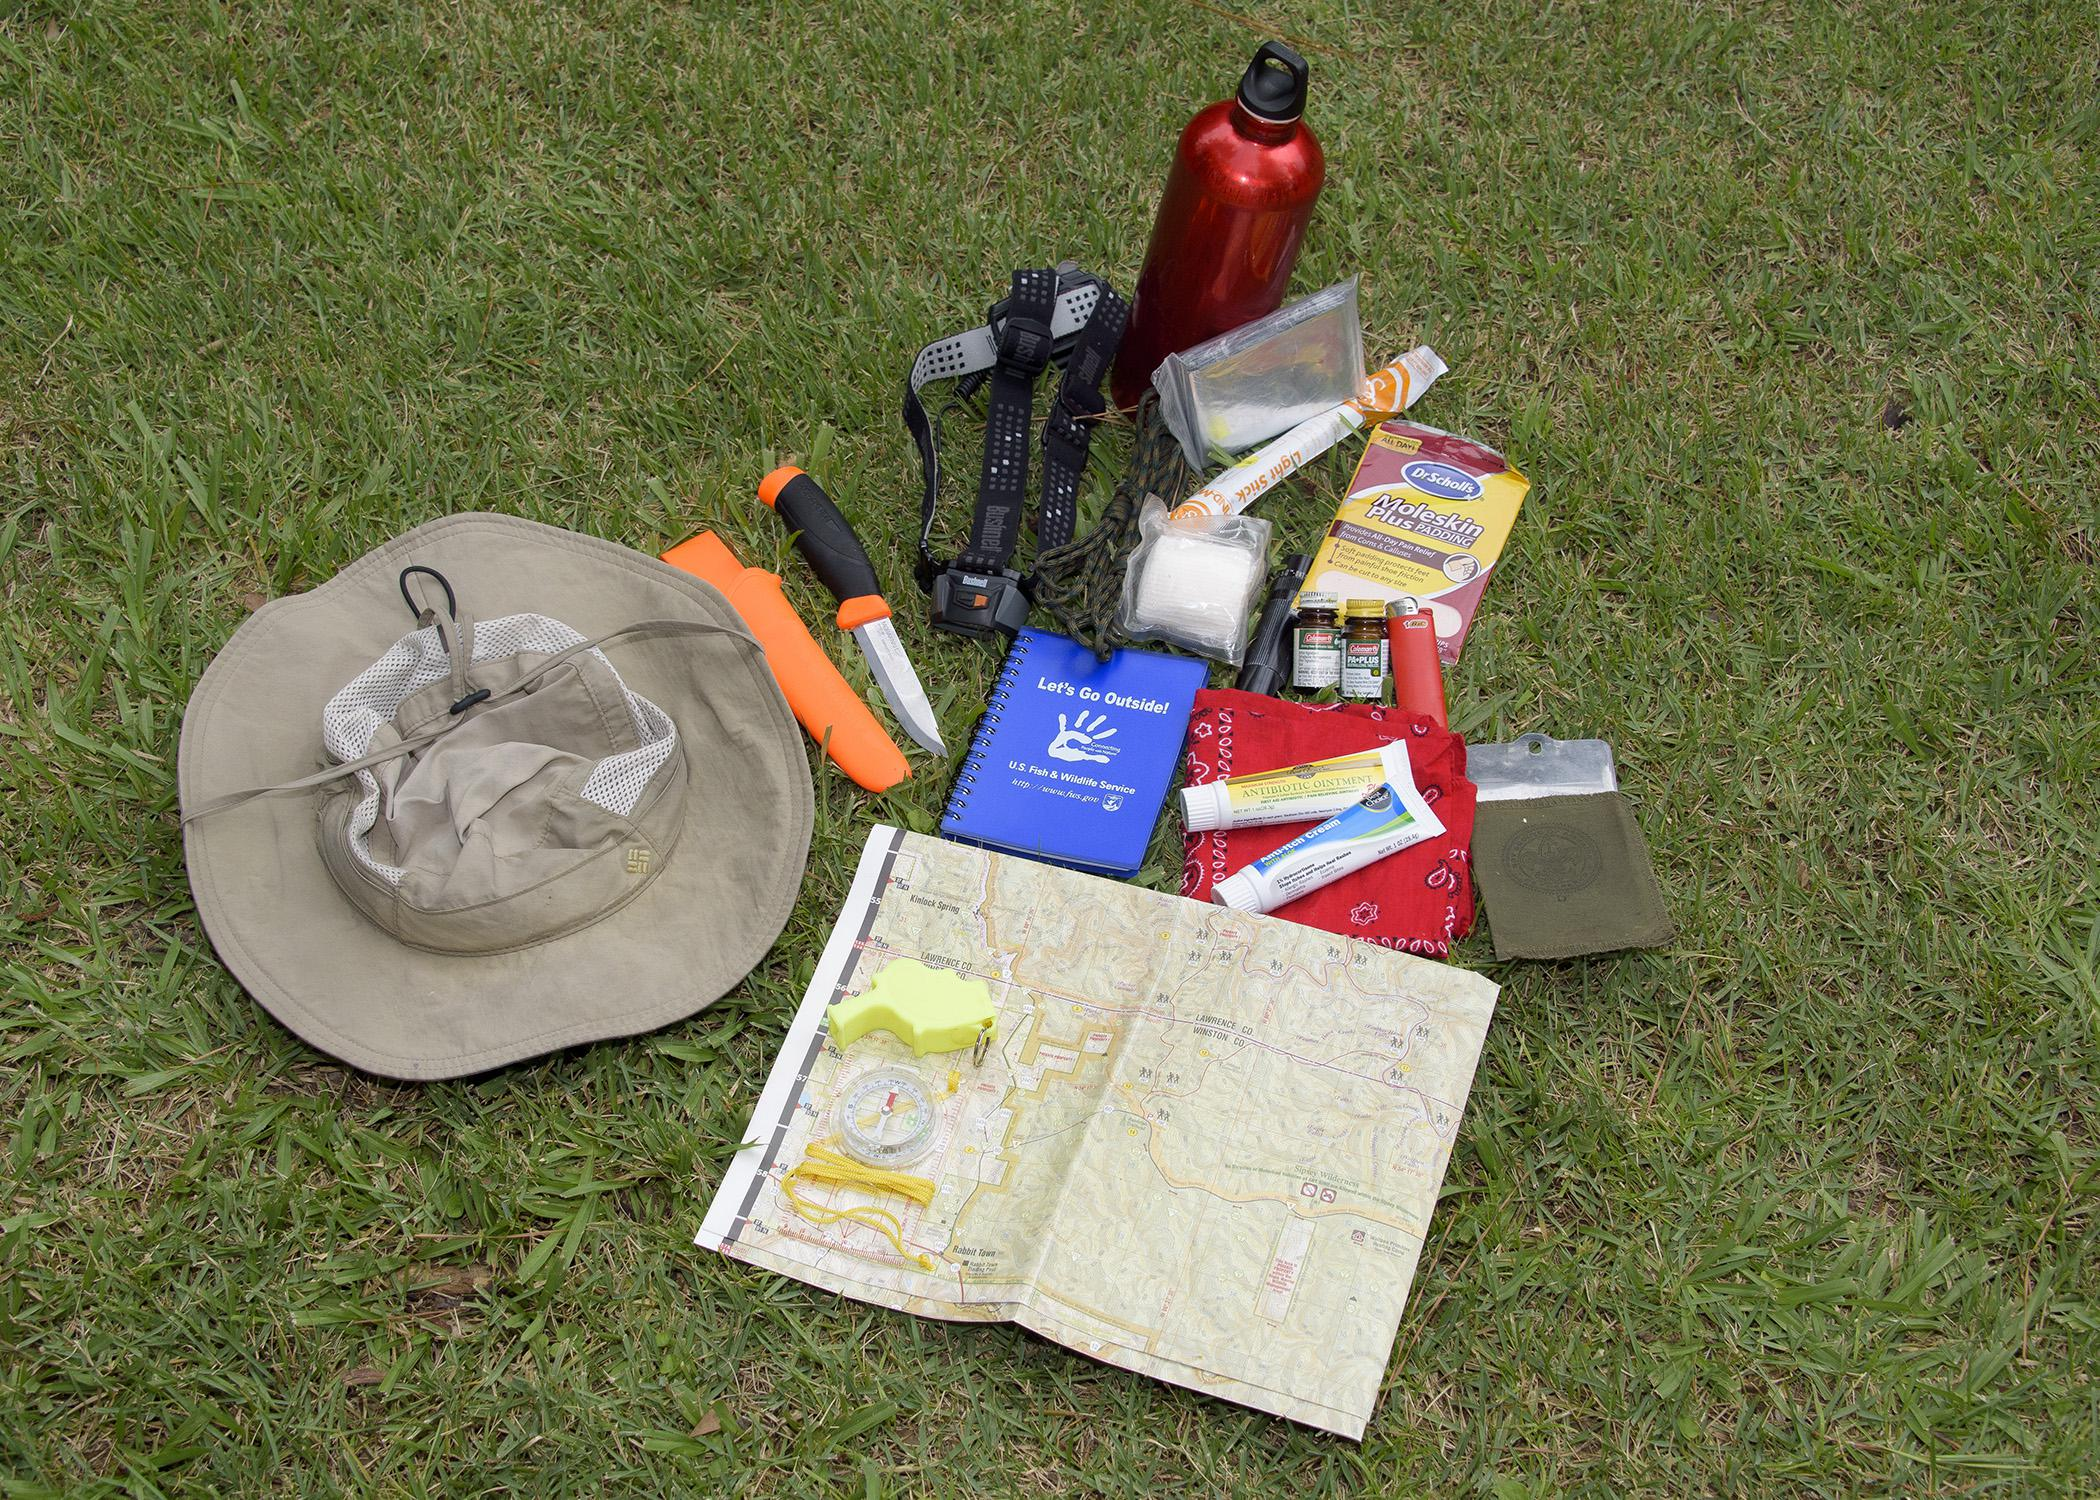 Being prepared for outdoor adventures includes carrying a hiking kit with a map, compass, flashlight, knife, whistle, first-aid items, water and protection from the seasonal elements. (Photo by MSU Ag Communications/Kevin Hudson)